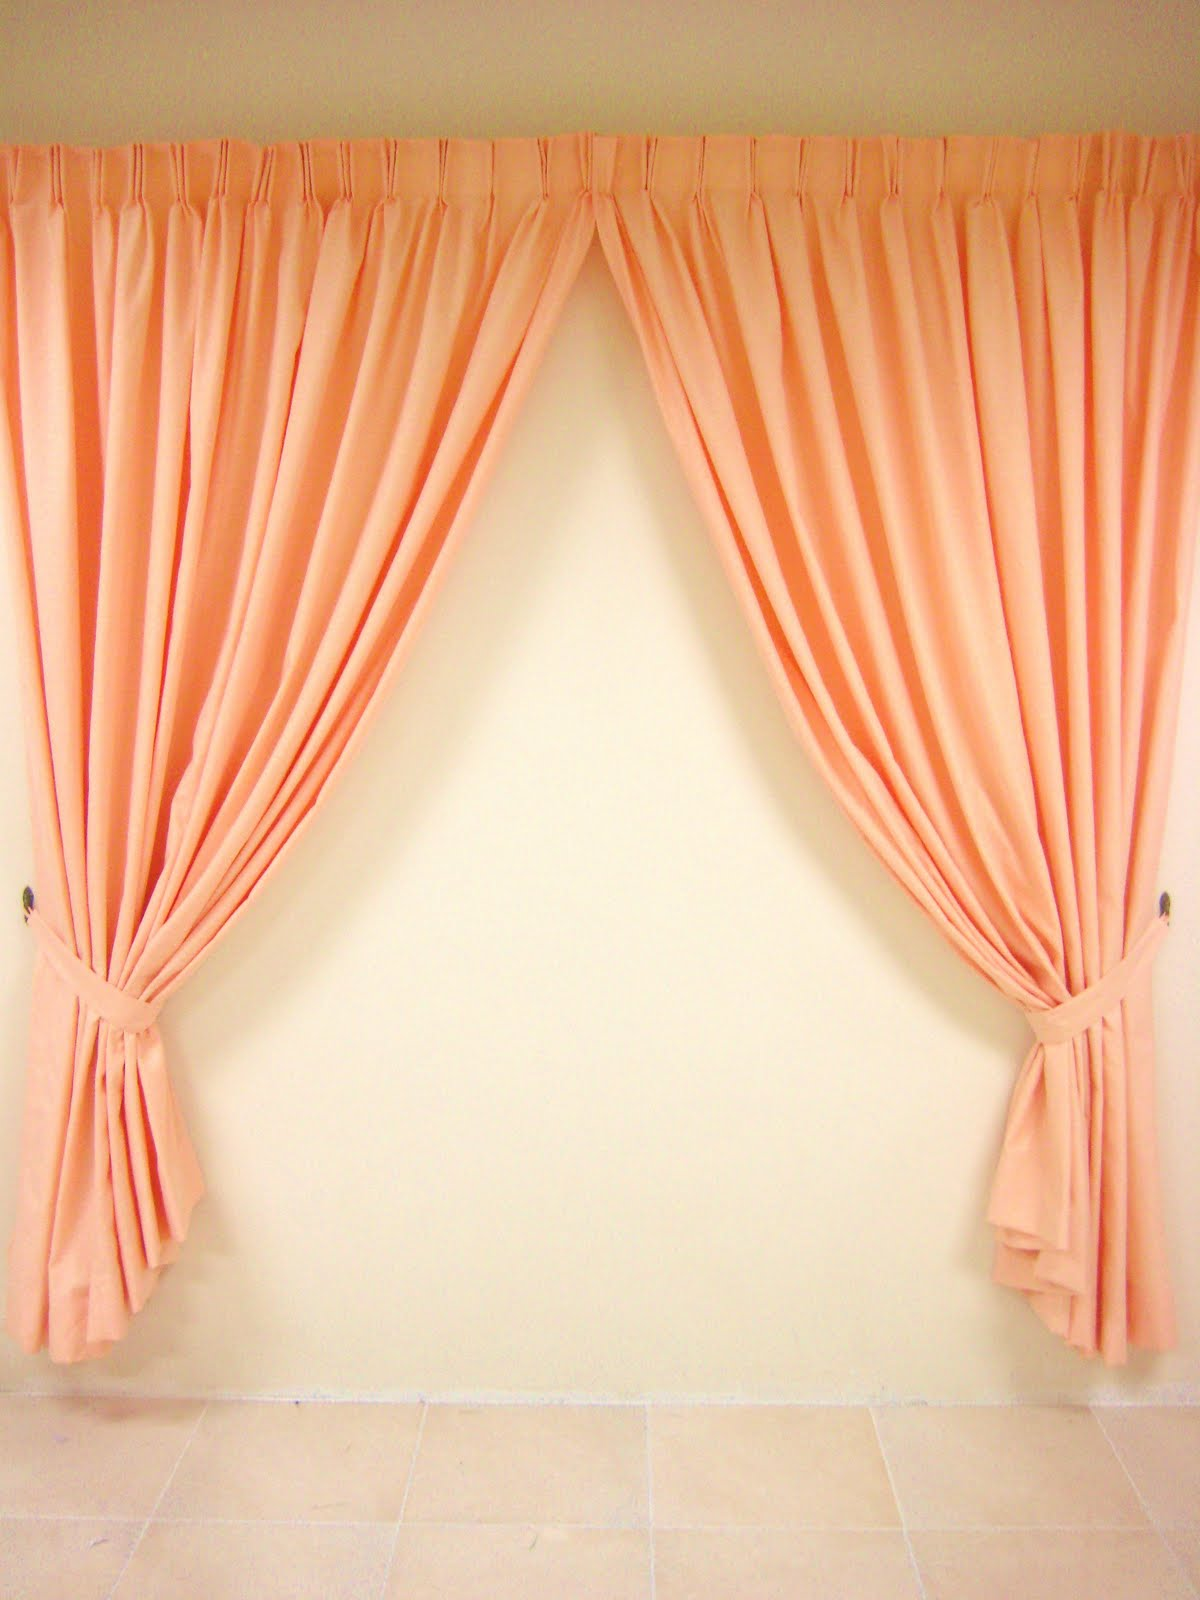 Window Curtain Design Ideas: Absolute Perfect Design 天衣无缝: Promotion For Window Curtains